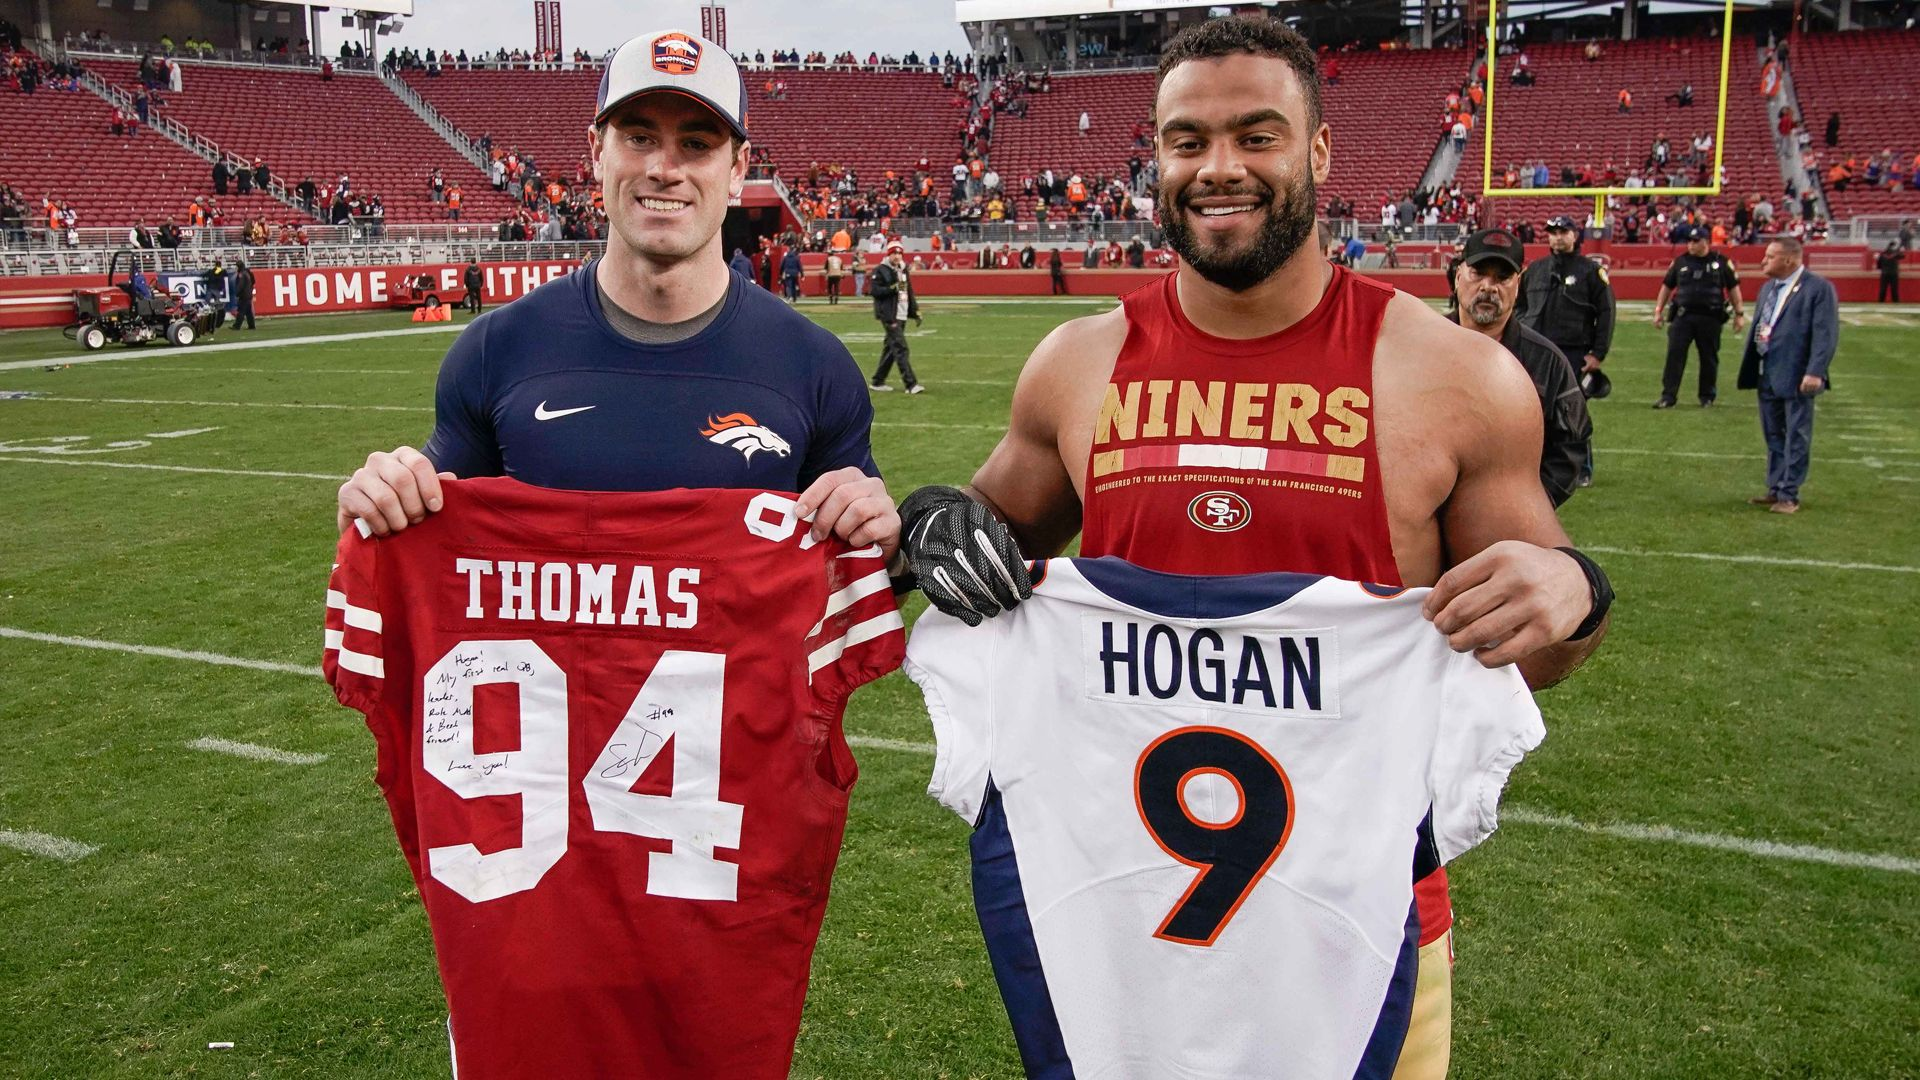 Nfl Postgame Jersey Swaps Set Players Back A Pretty Penny Https Zthnews Com 2019 12 21 Nfl Postgame Jersey Swaps Set Players B Nfl Jersey 49ers Quarterback